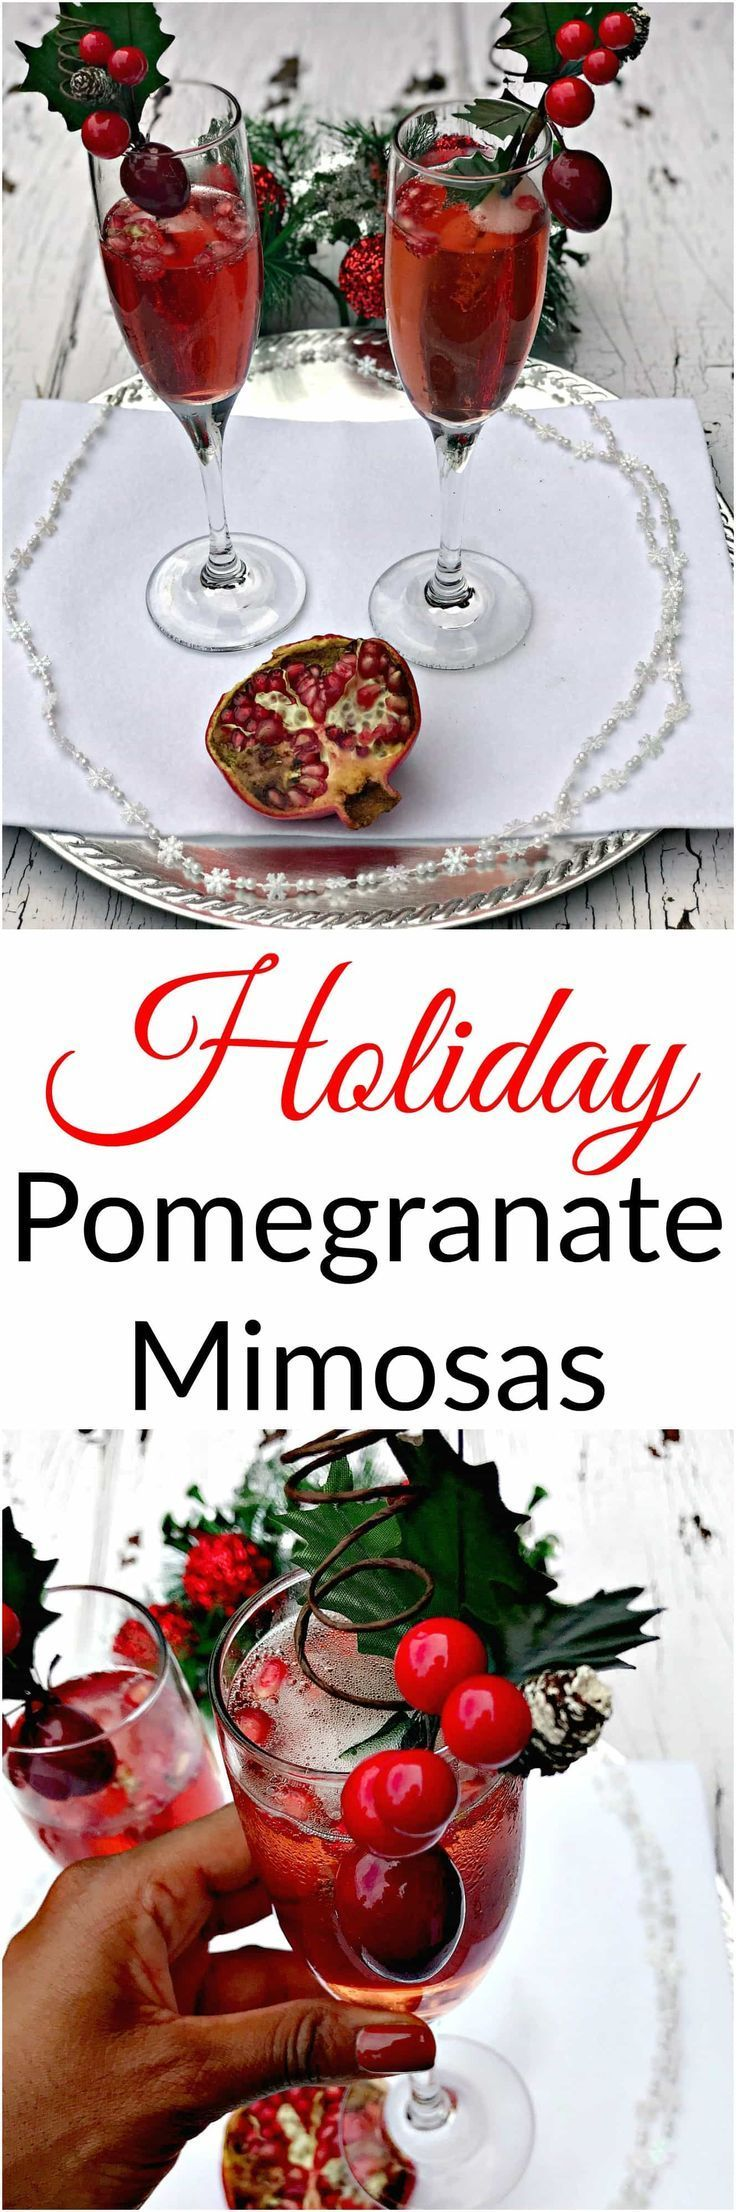 Pomegranate Holiday Mimosas are the perfect easy champagne cocktail for brunch, Thanksgiving, Christmas, New Years, parties, and events. #HolidayDrinks #HolidayCocktails #ThanksgivingDrinks #ChristmasDrinks #ChristmasCocktails #NYE #NYEDrinks #NewYearsCocktails